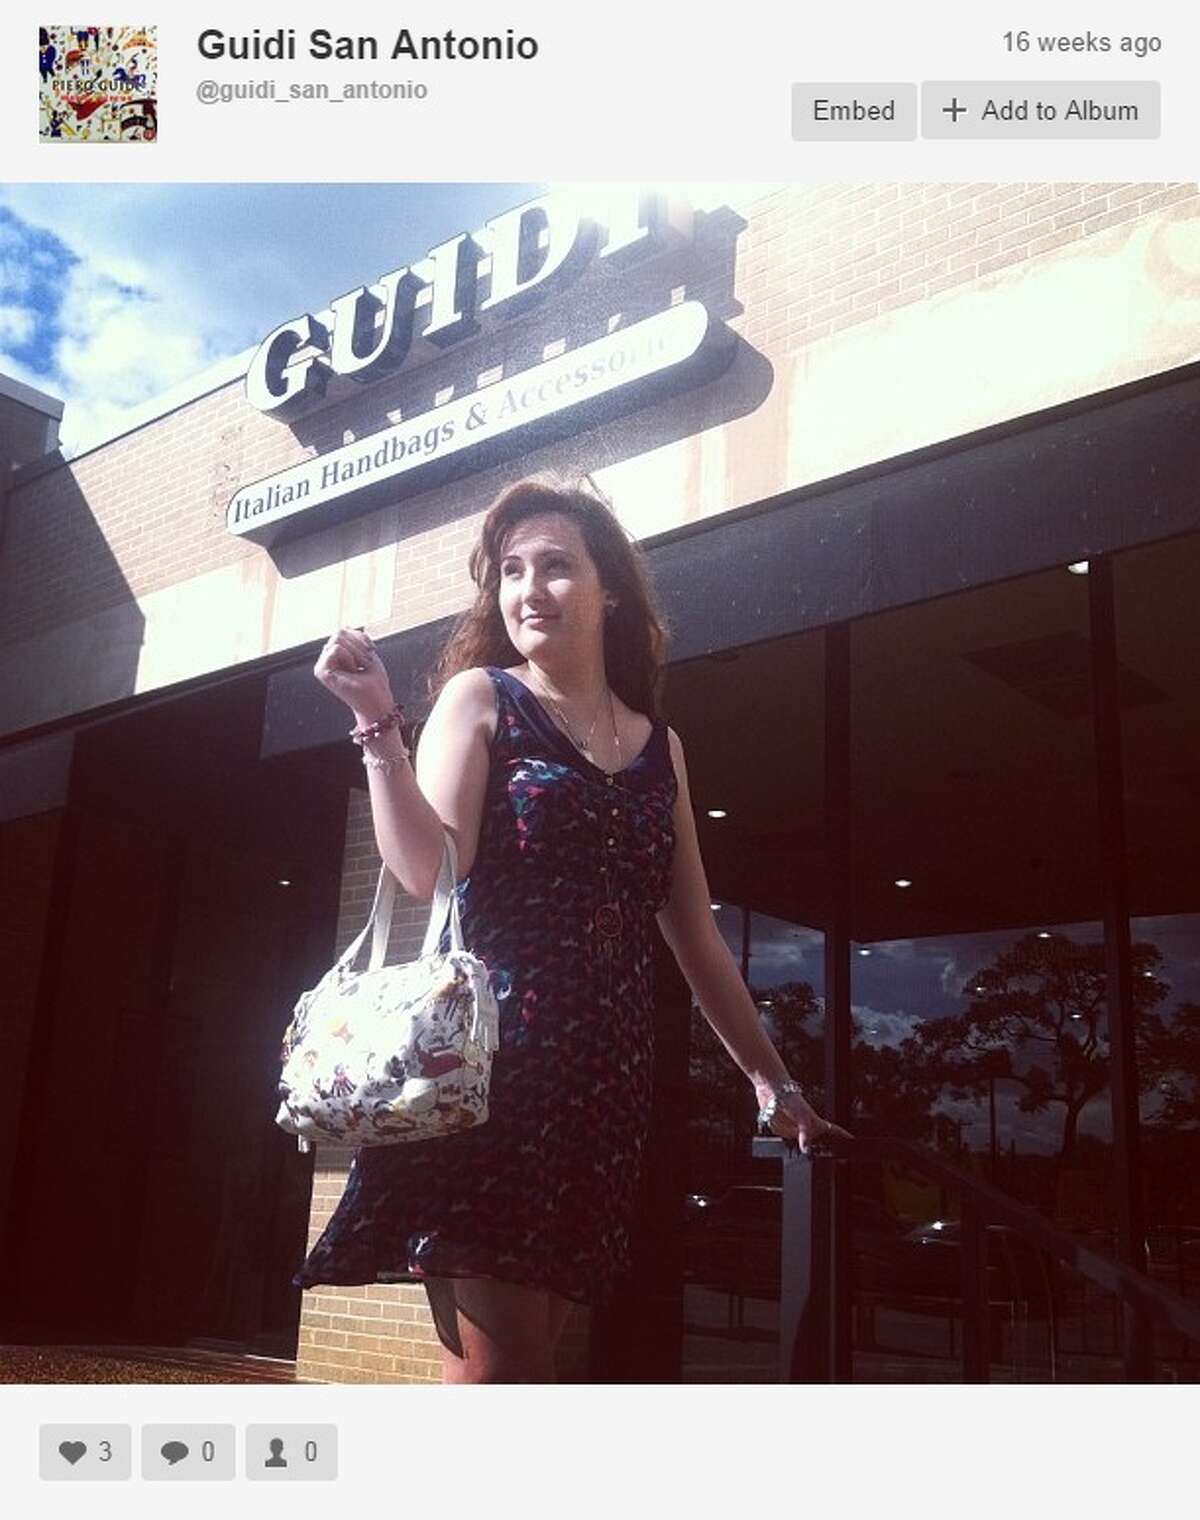 The Guidi Italian Handbags store, 2177 N.W. Military Hwy. in Castle Hills, was burglarized at 1:55 a.m. on Thursday, Sept. 25, 2014. Thieves stole an estimated $15,000 in merchandise.